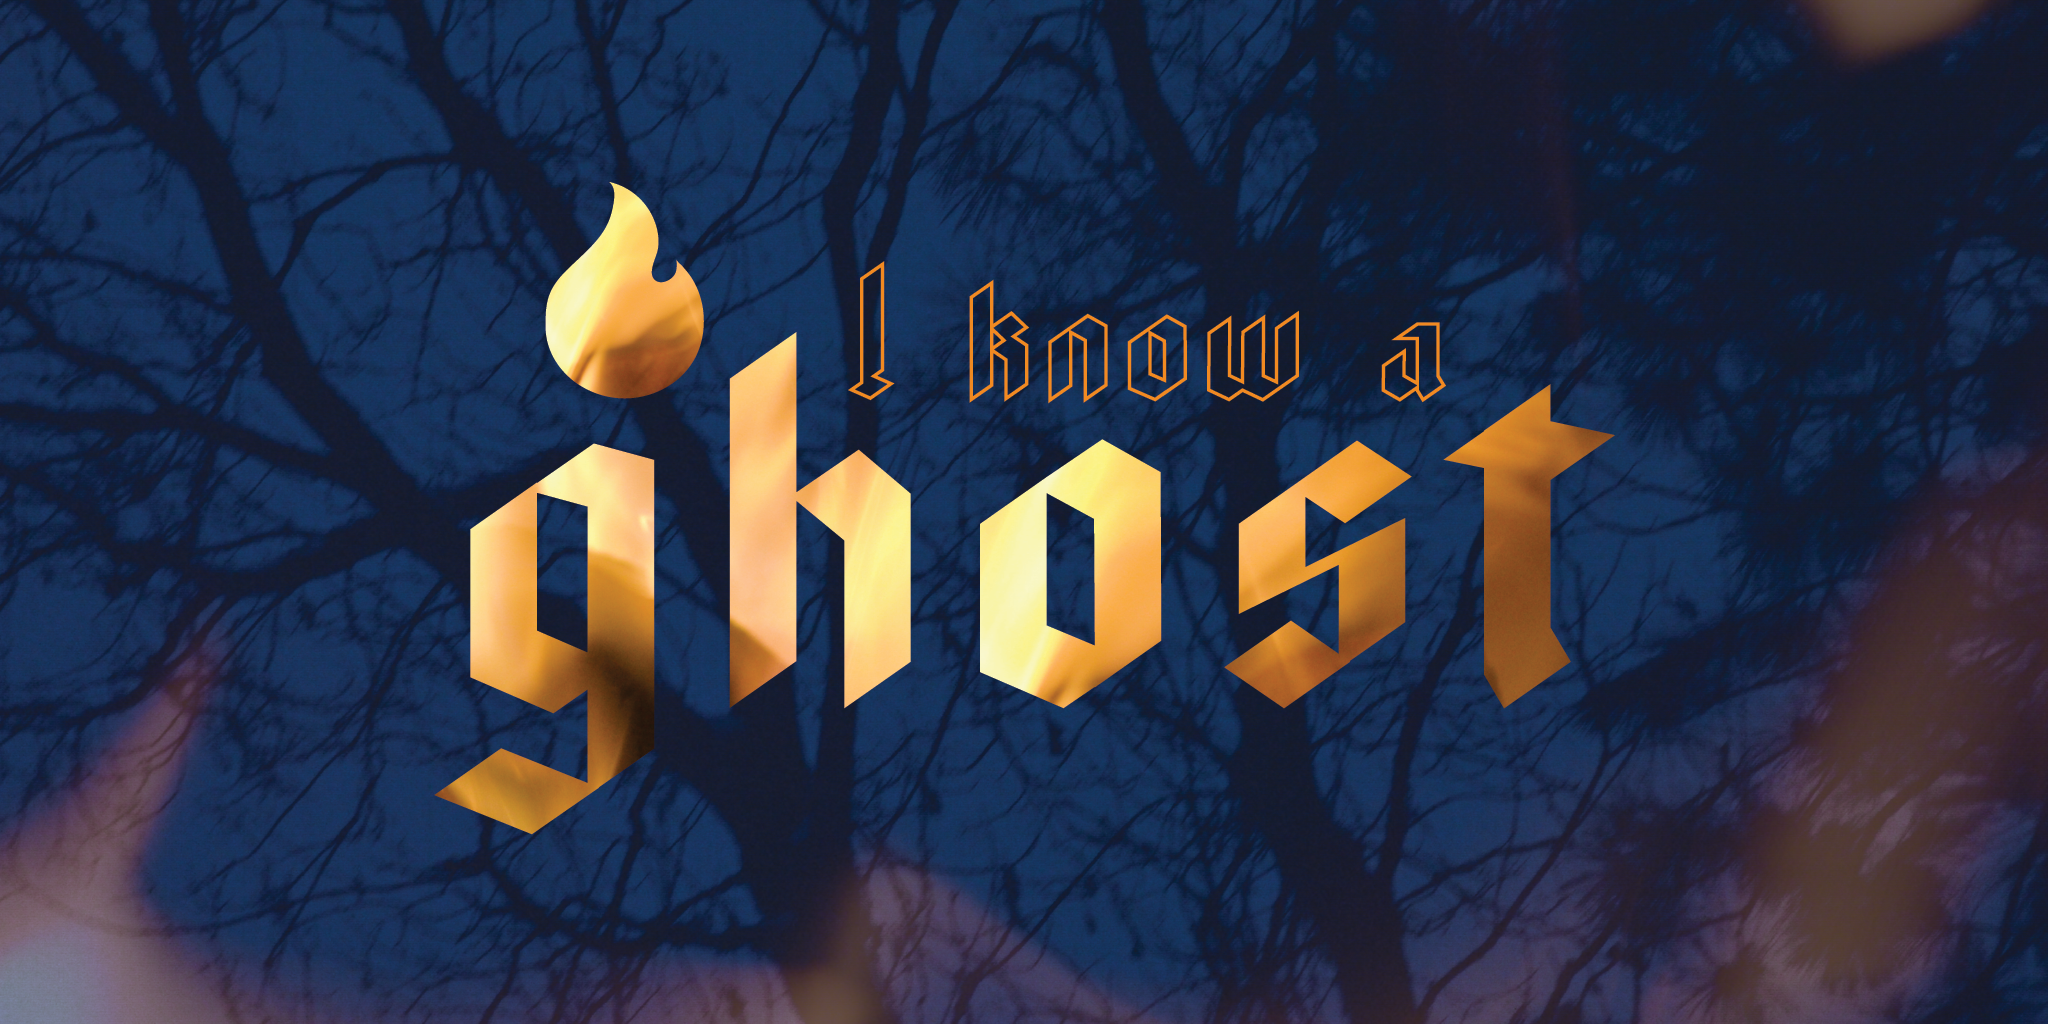 i know a ghost graphic